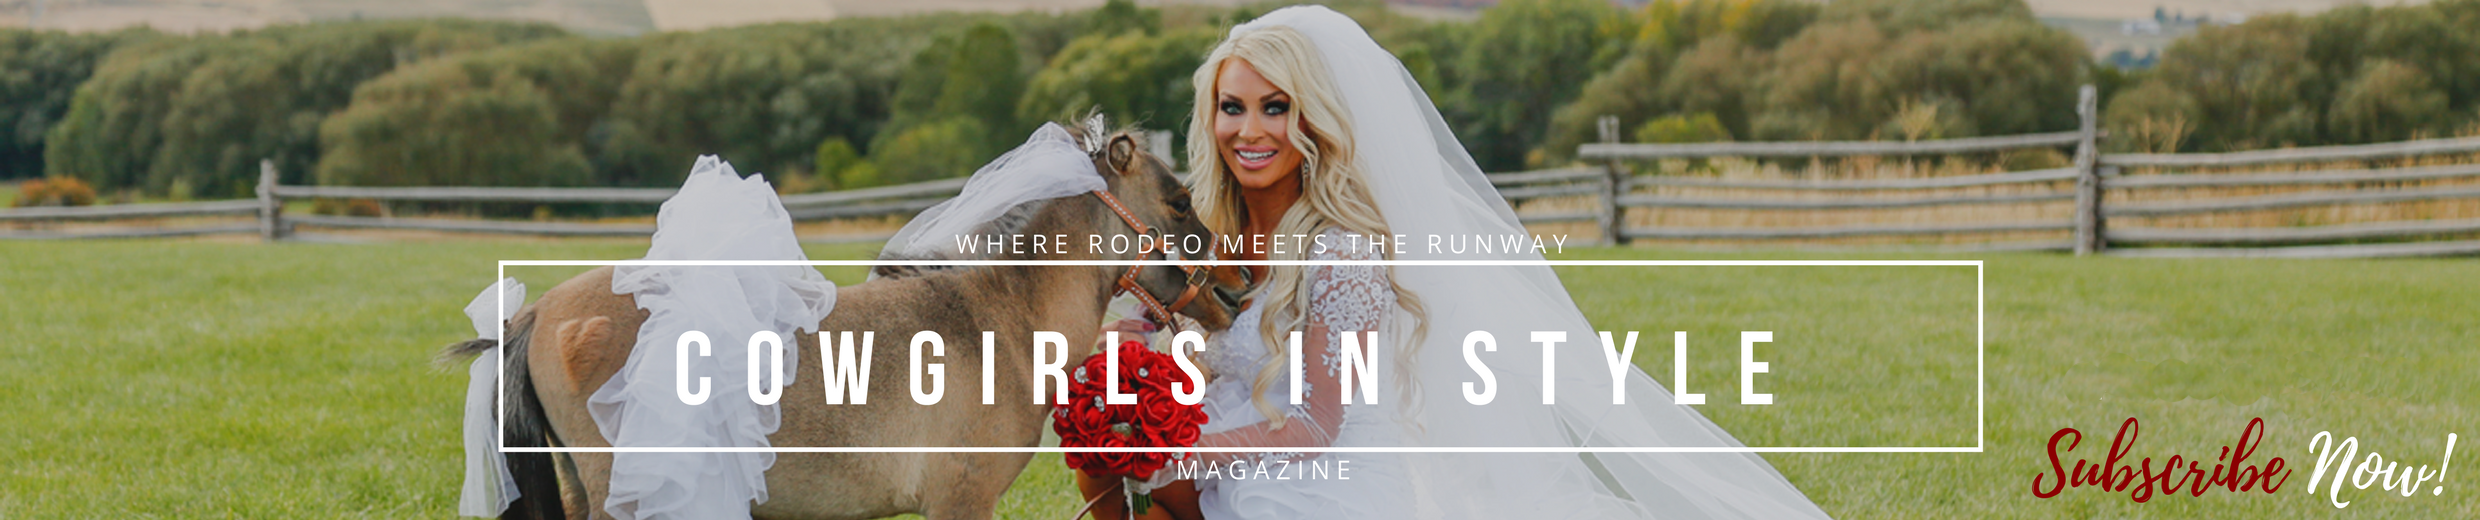 Rodeo Runway Archives - Cowgirls In Style Magazine